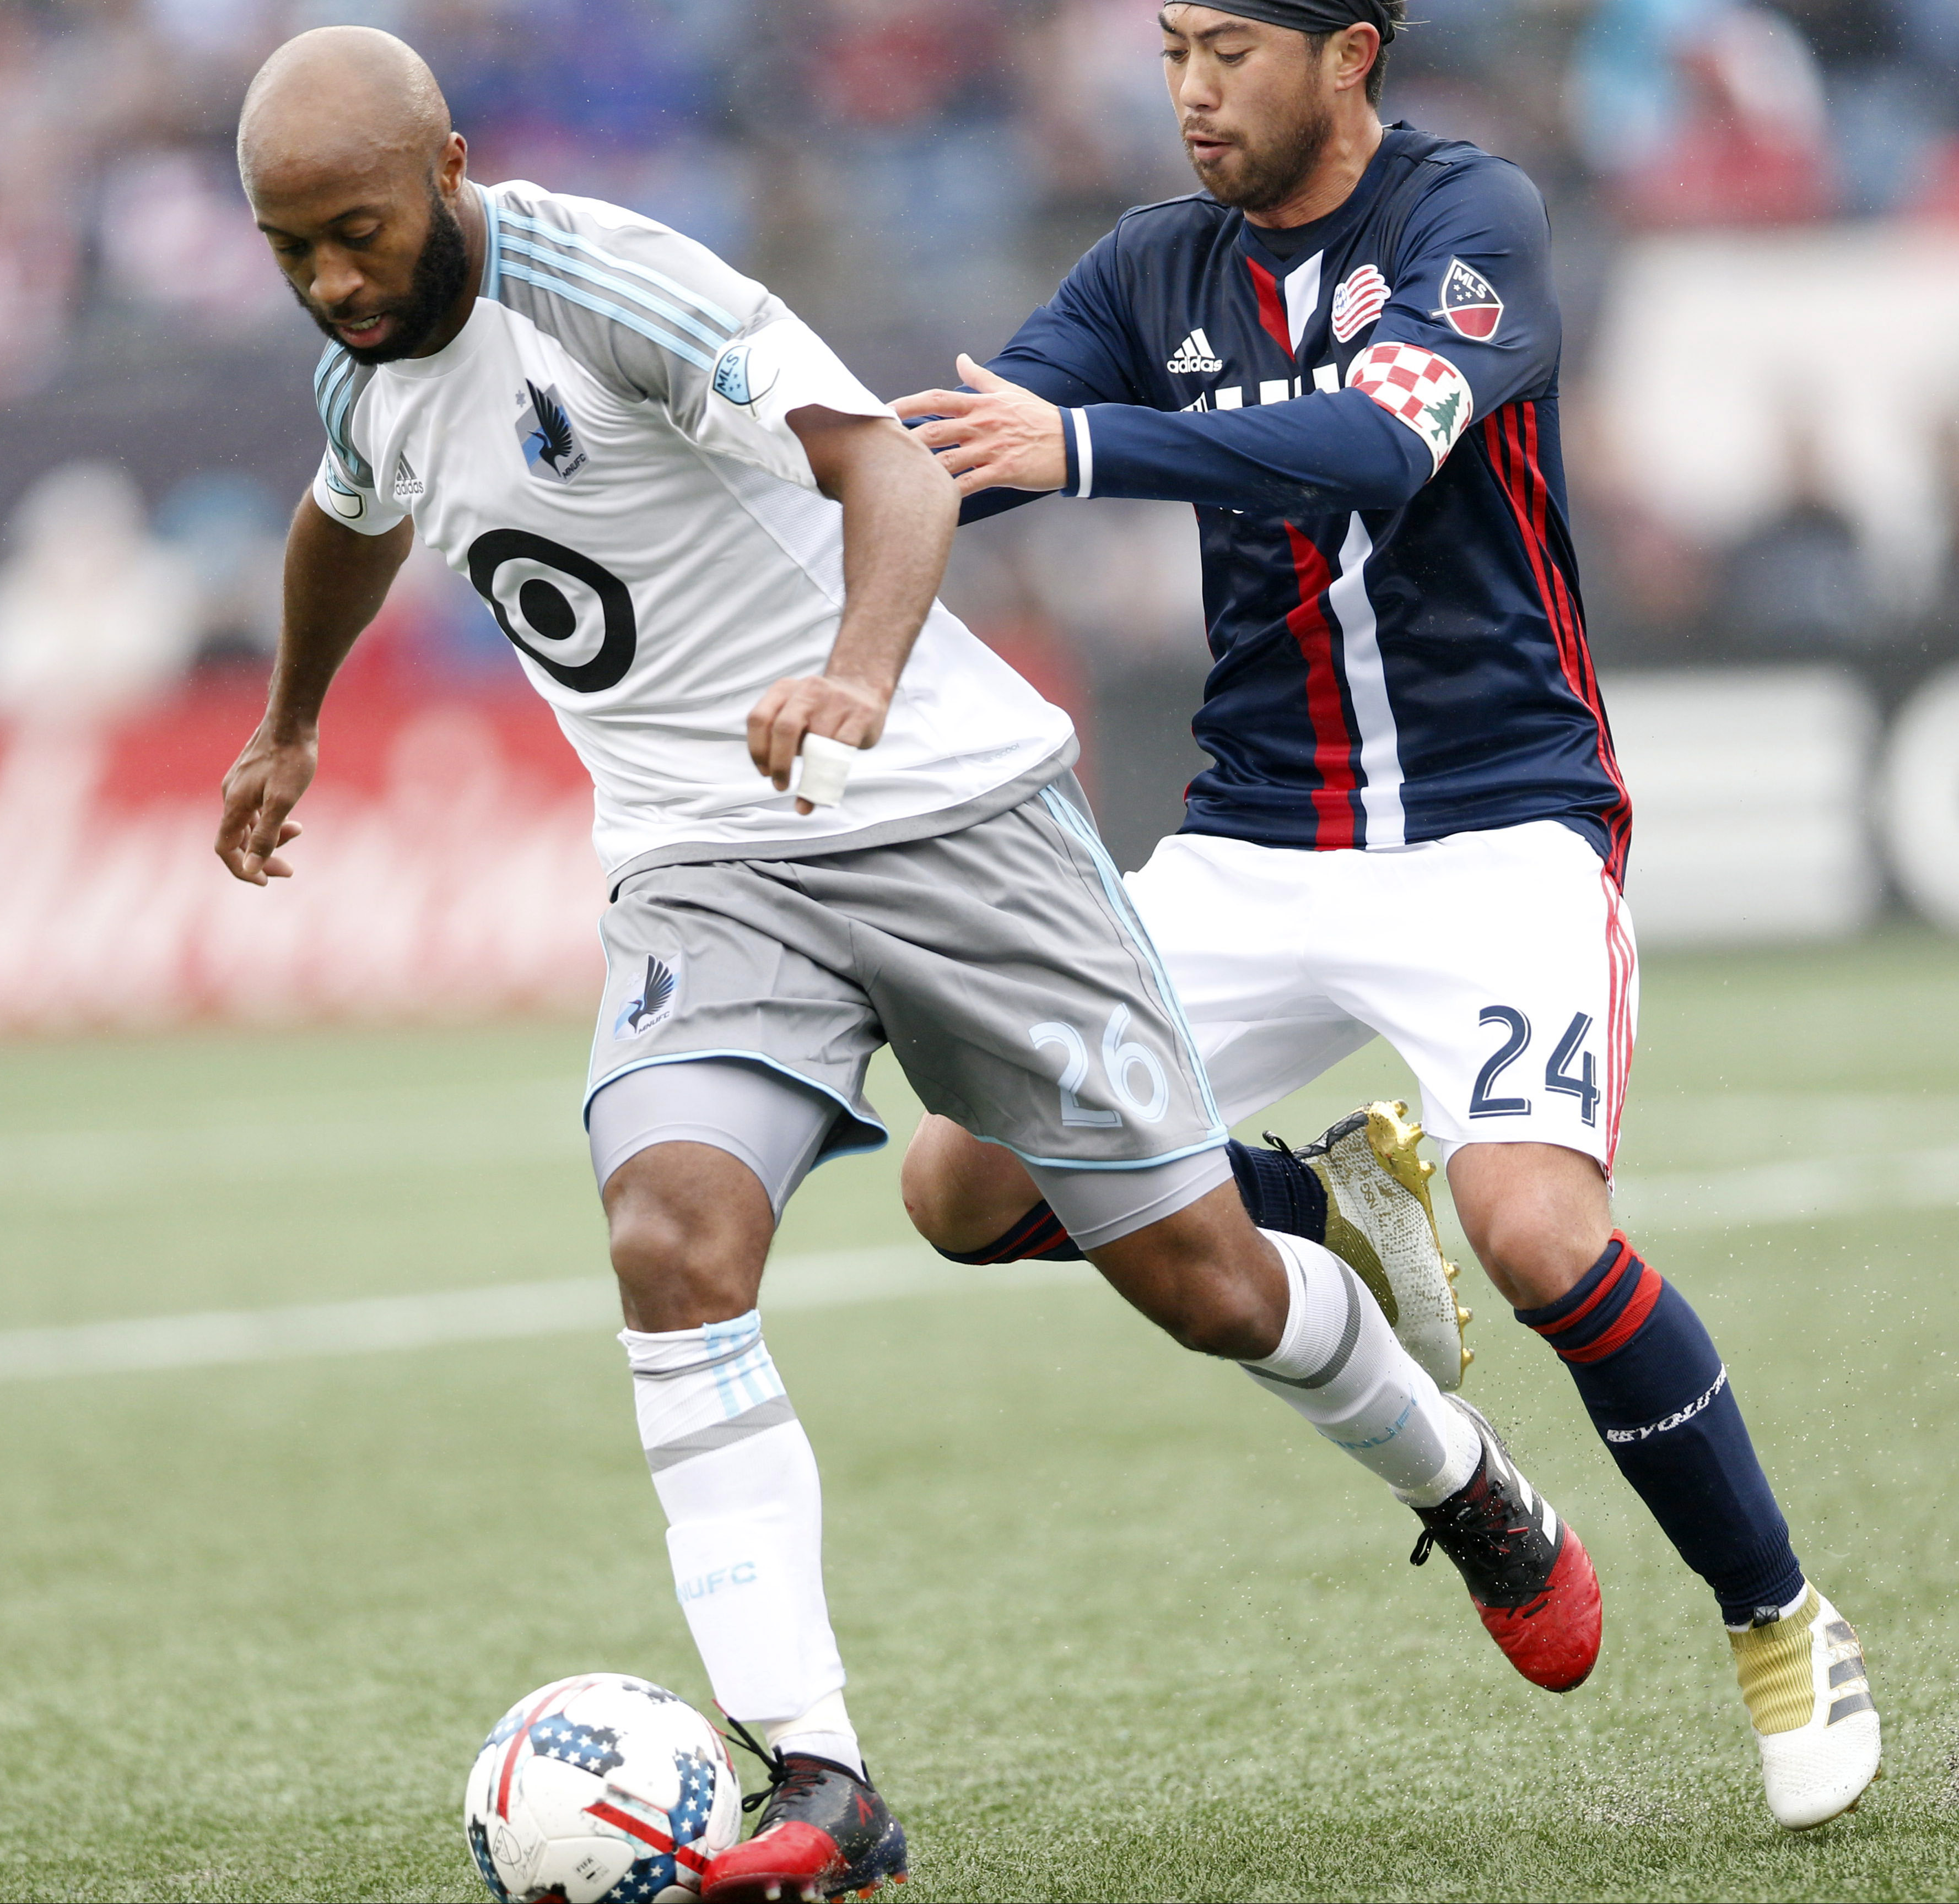 9970162-mls-minnesota-united-fc-at-new-england-revolution